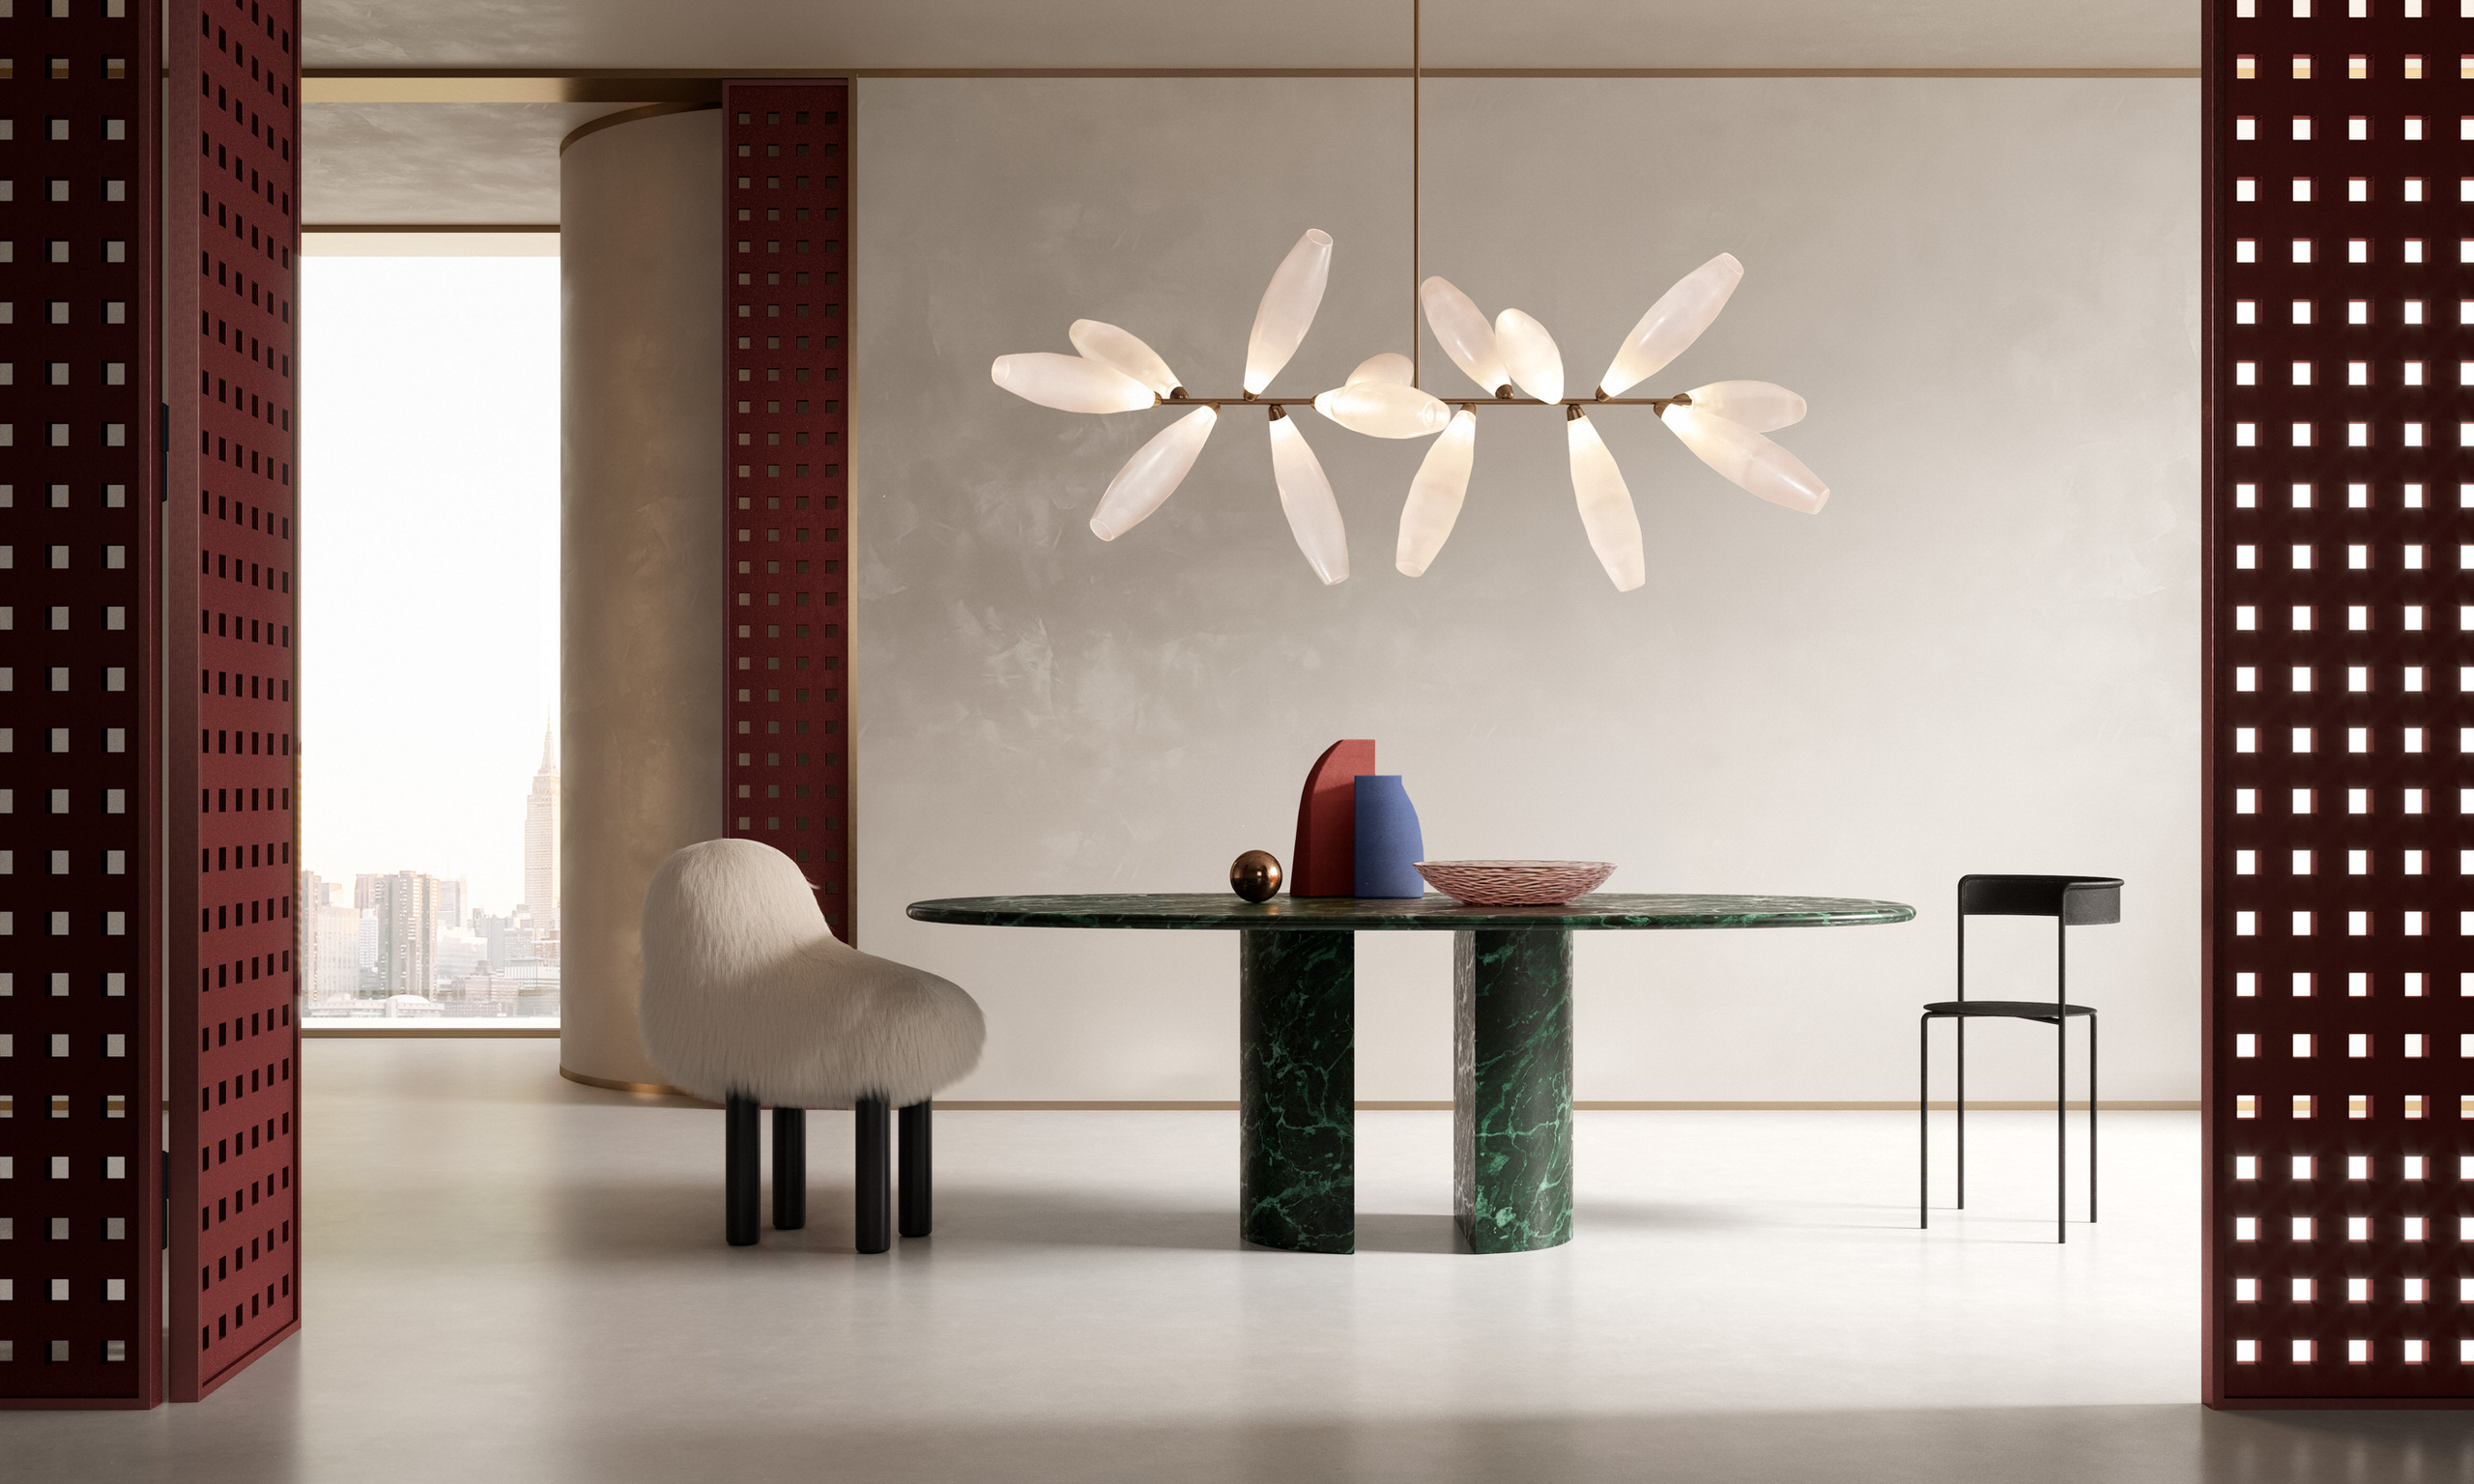 Supernatural Daydreams and Divine Lighting Collections by Giopato & Coombes.